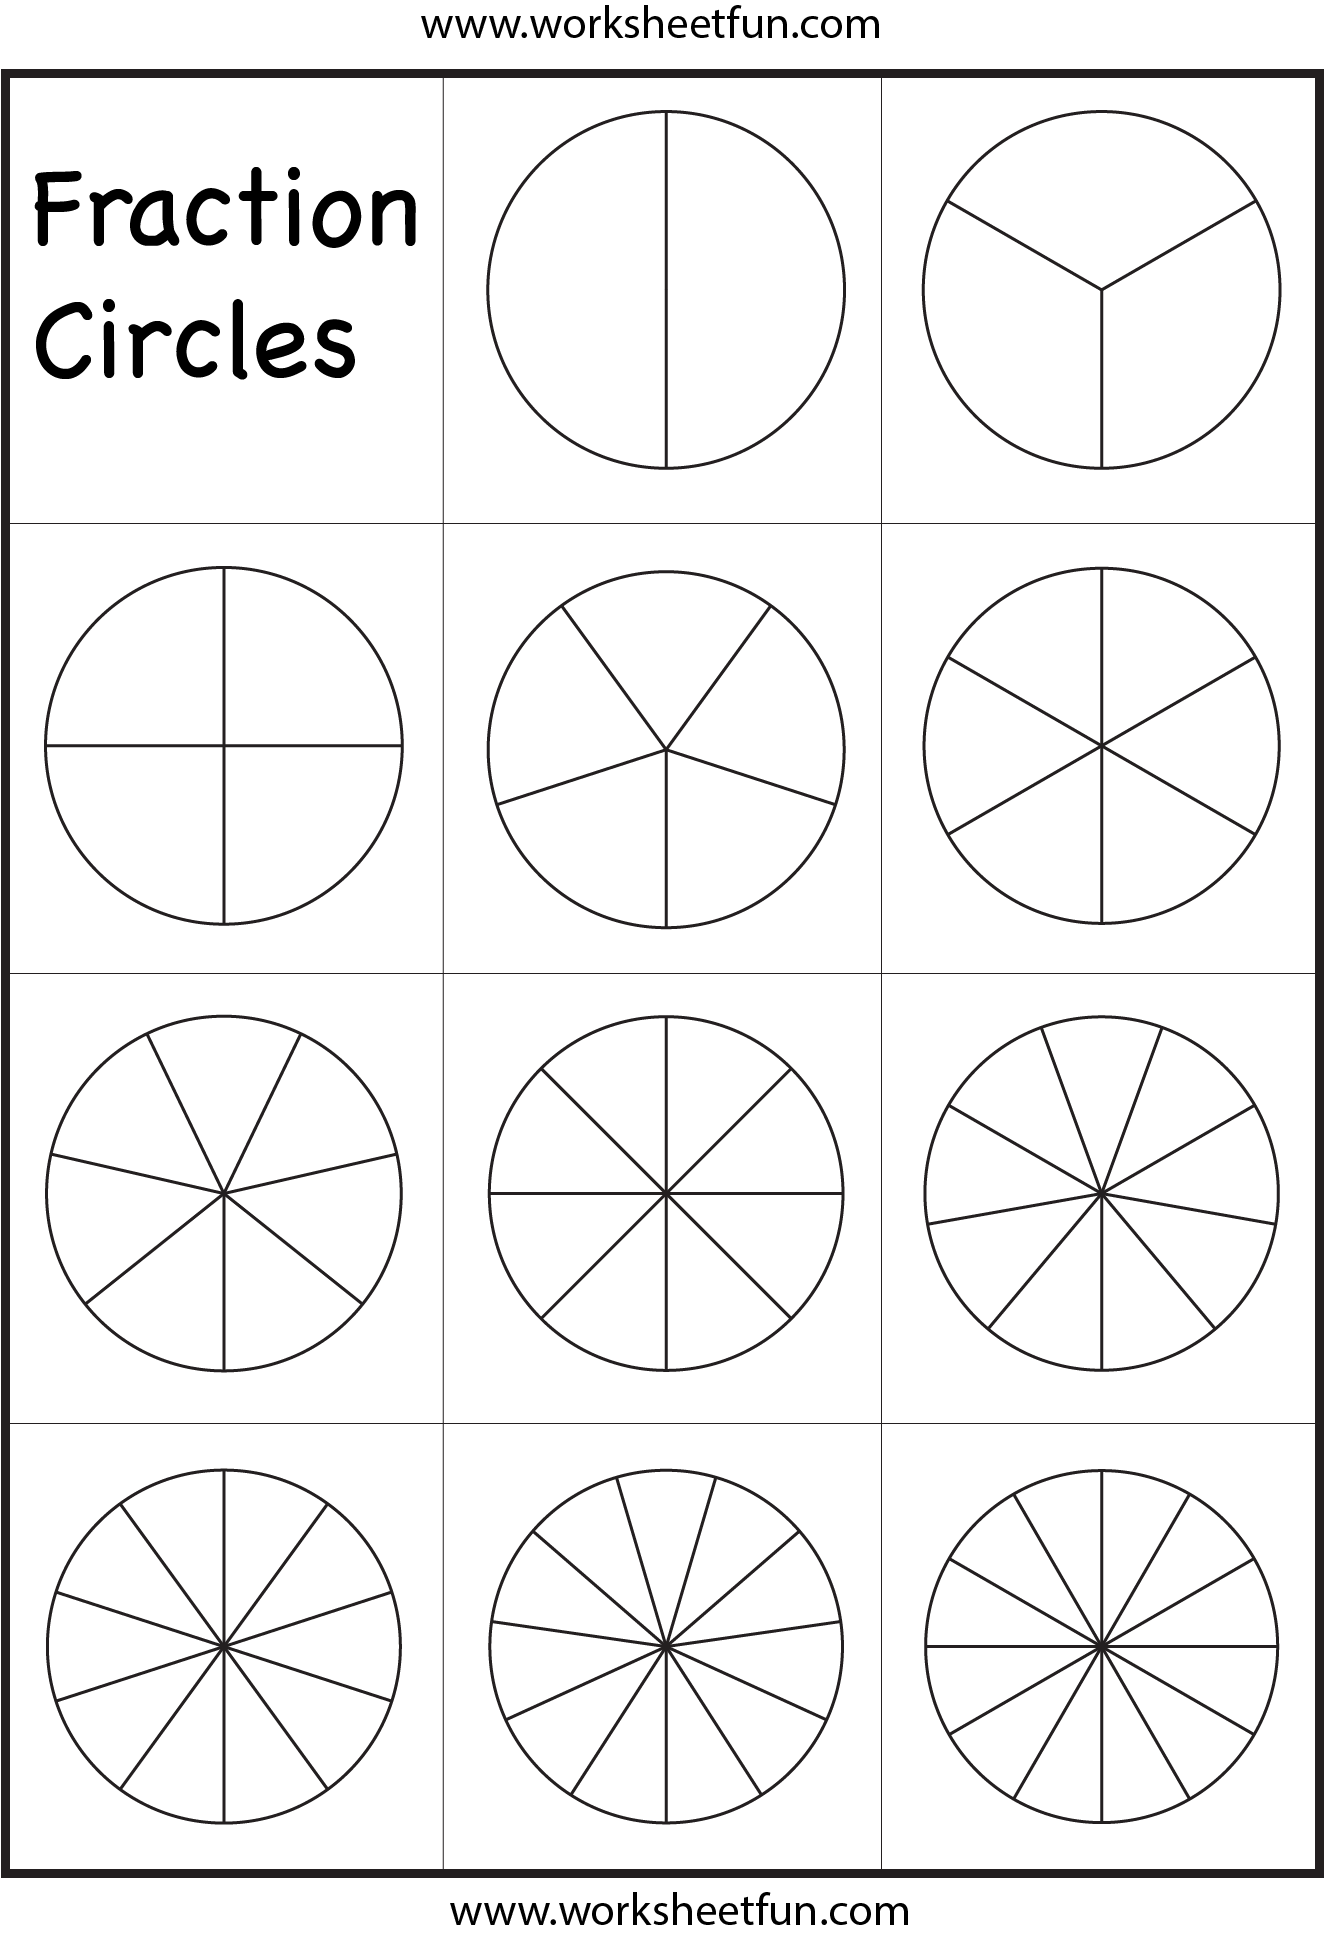 Pics Photos - Fraction Circles Template Printable Fraction Circles 11